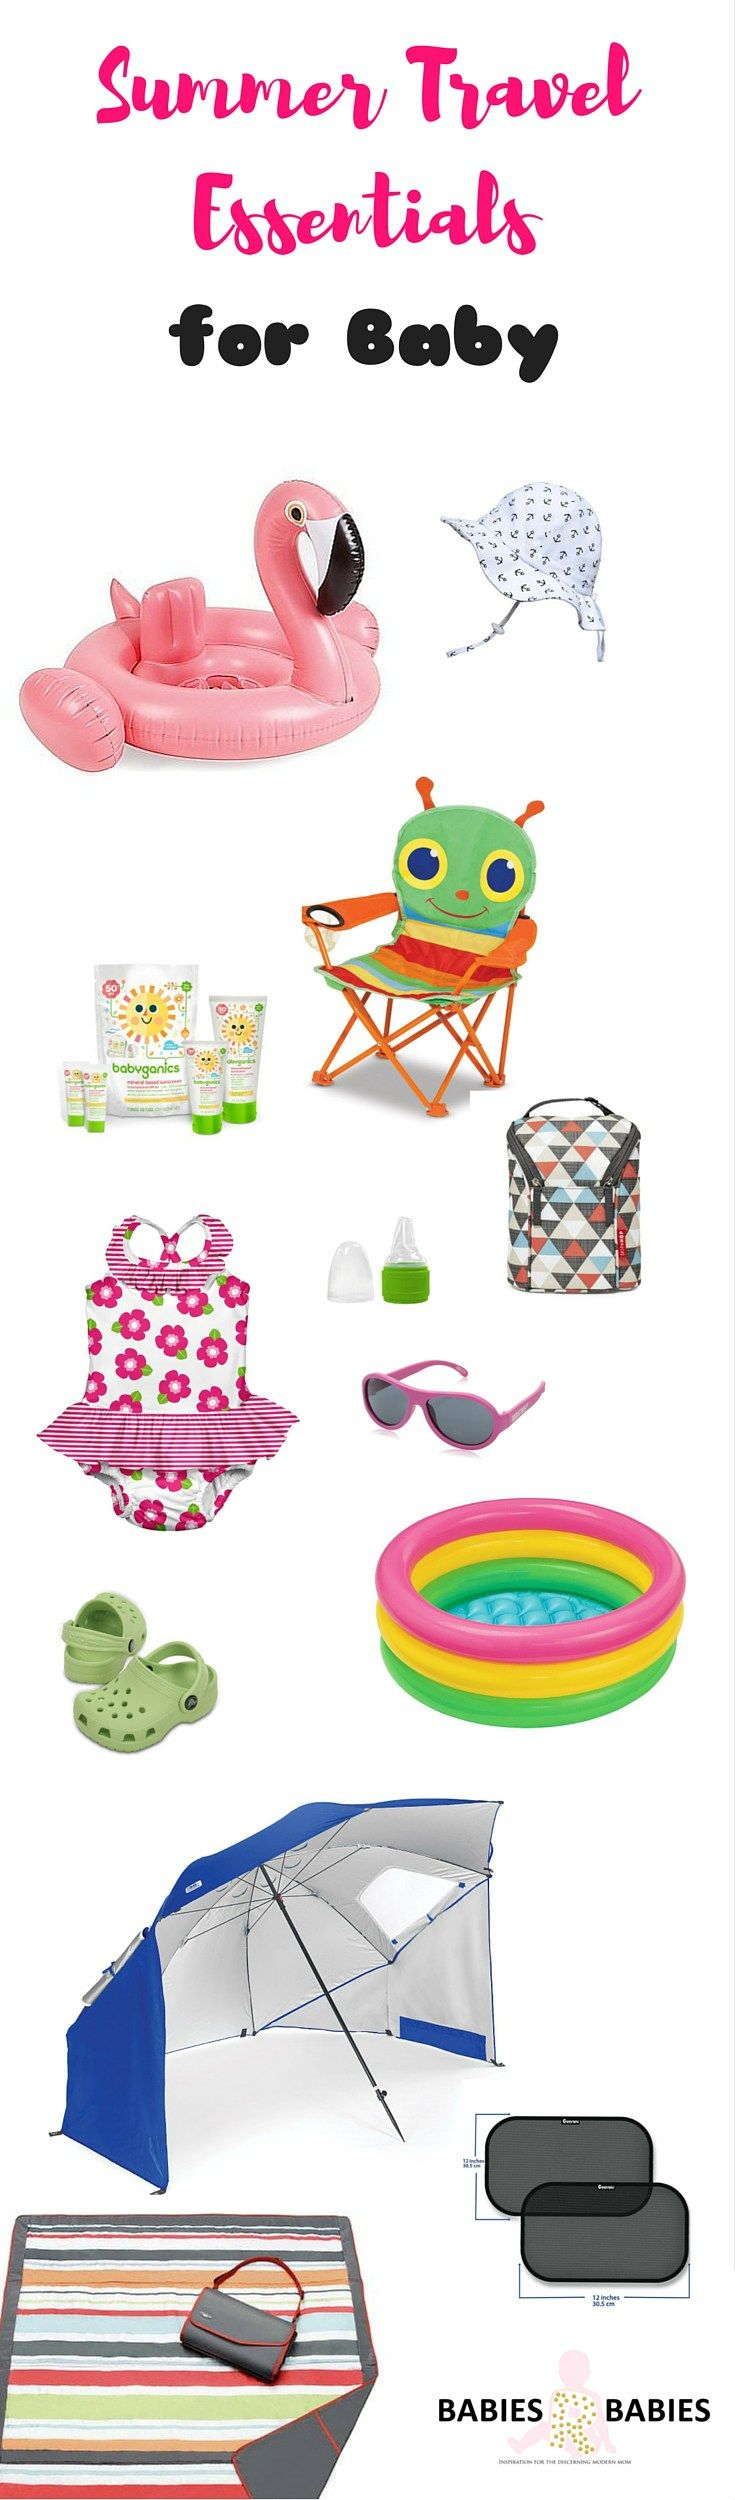 A list of must have essentials to prepare for baby's summer trips.With these summer travel essentials the baby can have a fun, comfortable and safe summer.